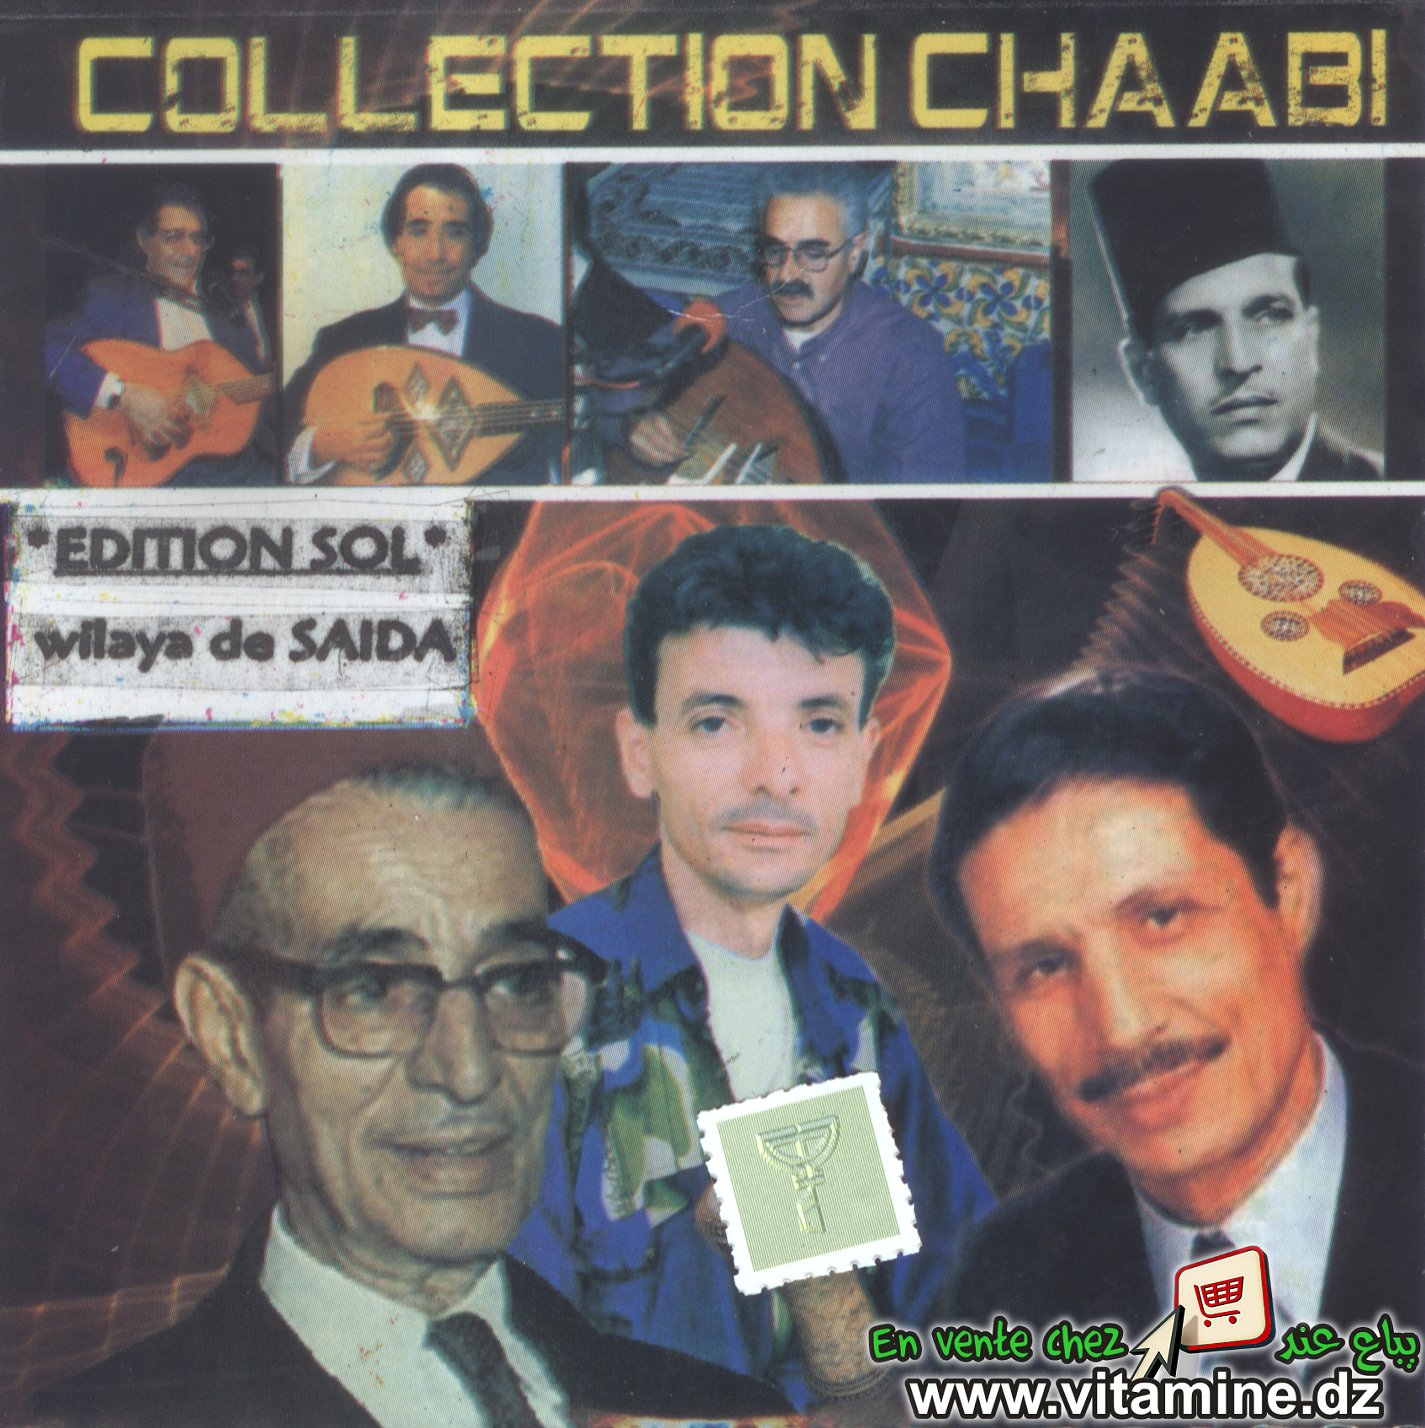 Collection chaâbi